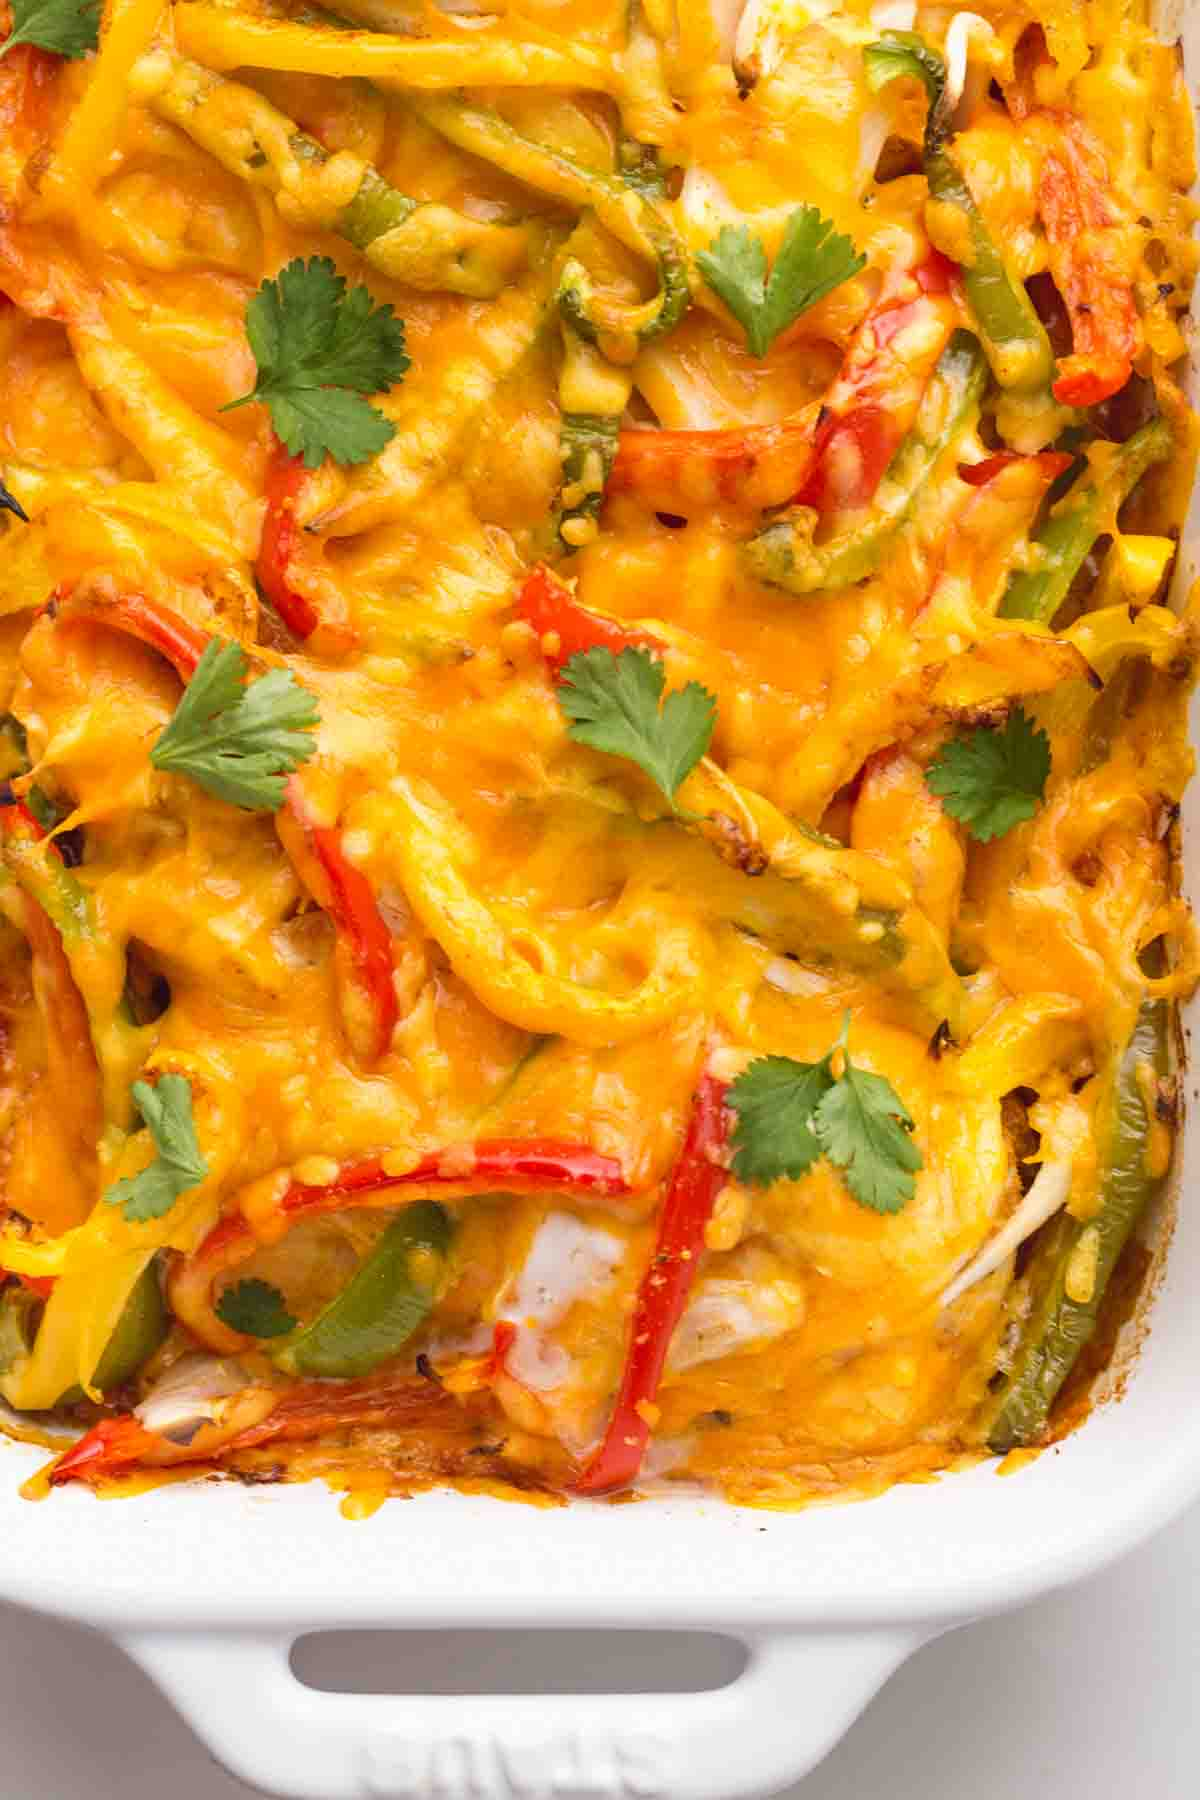 A close up of the fajita chicken casserole